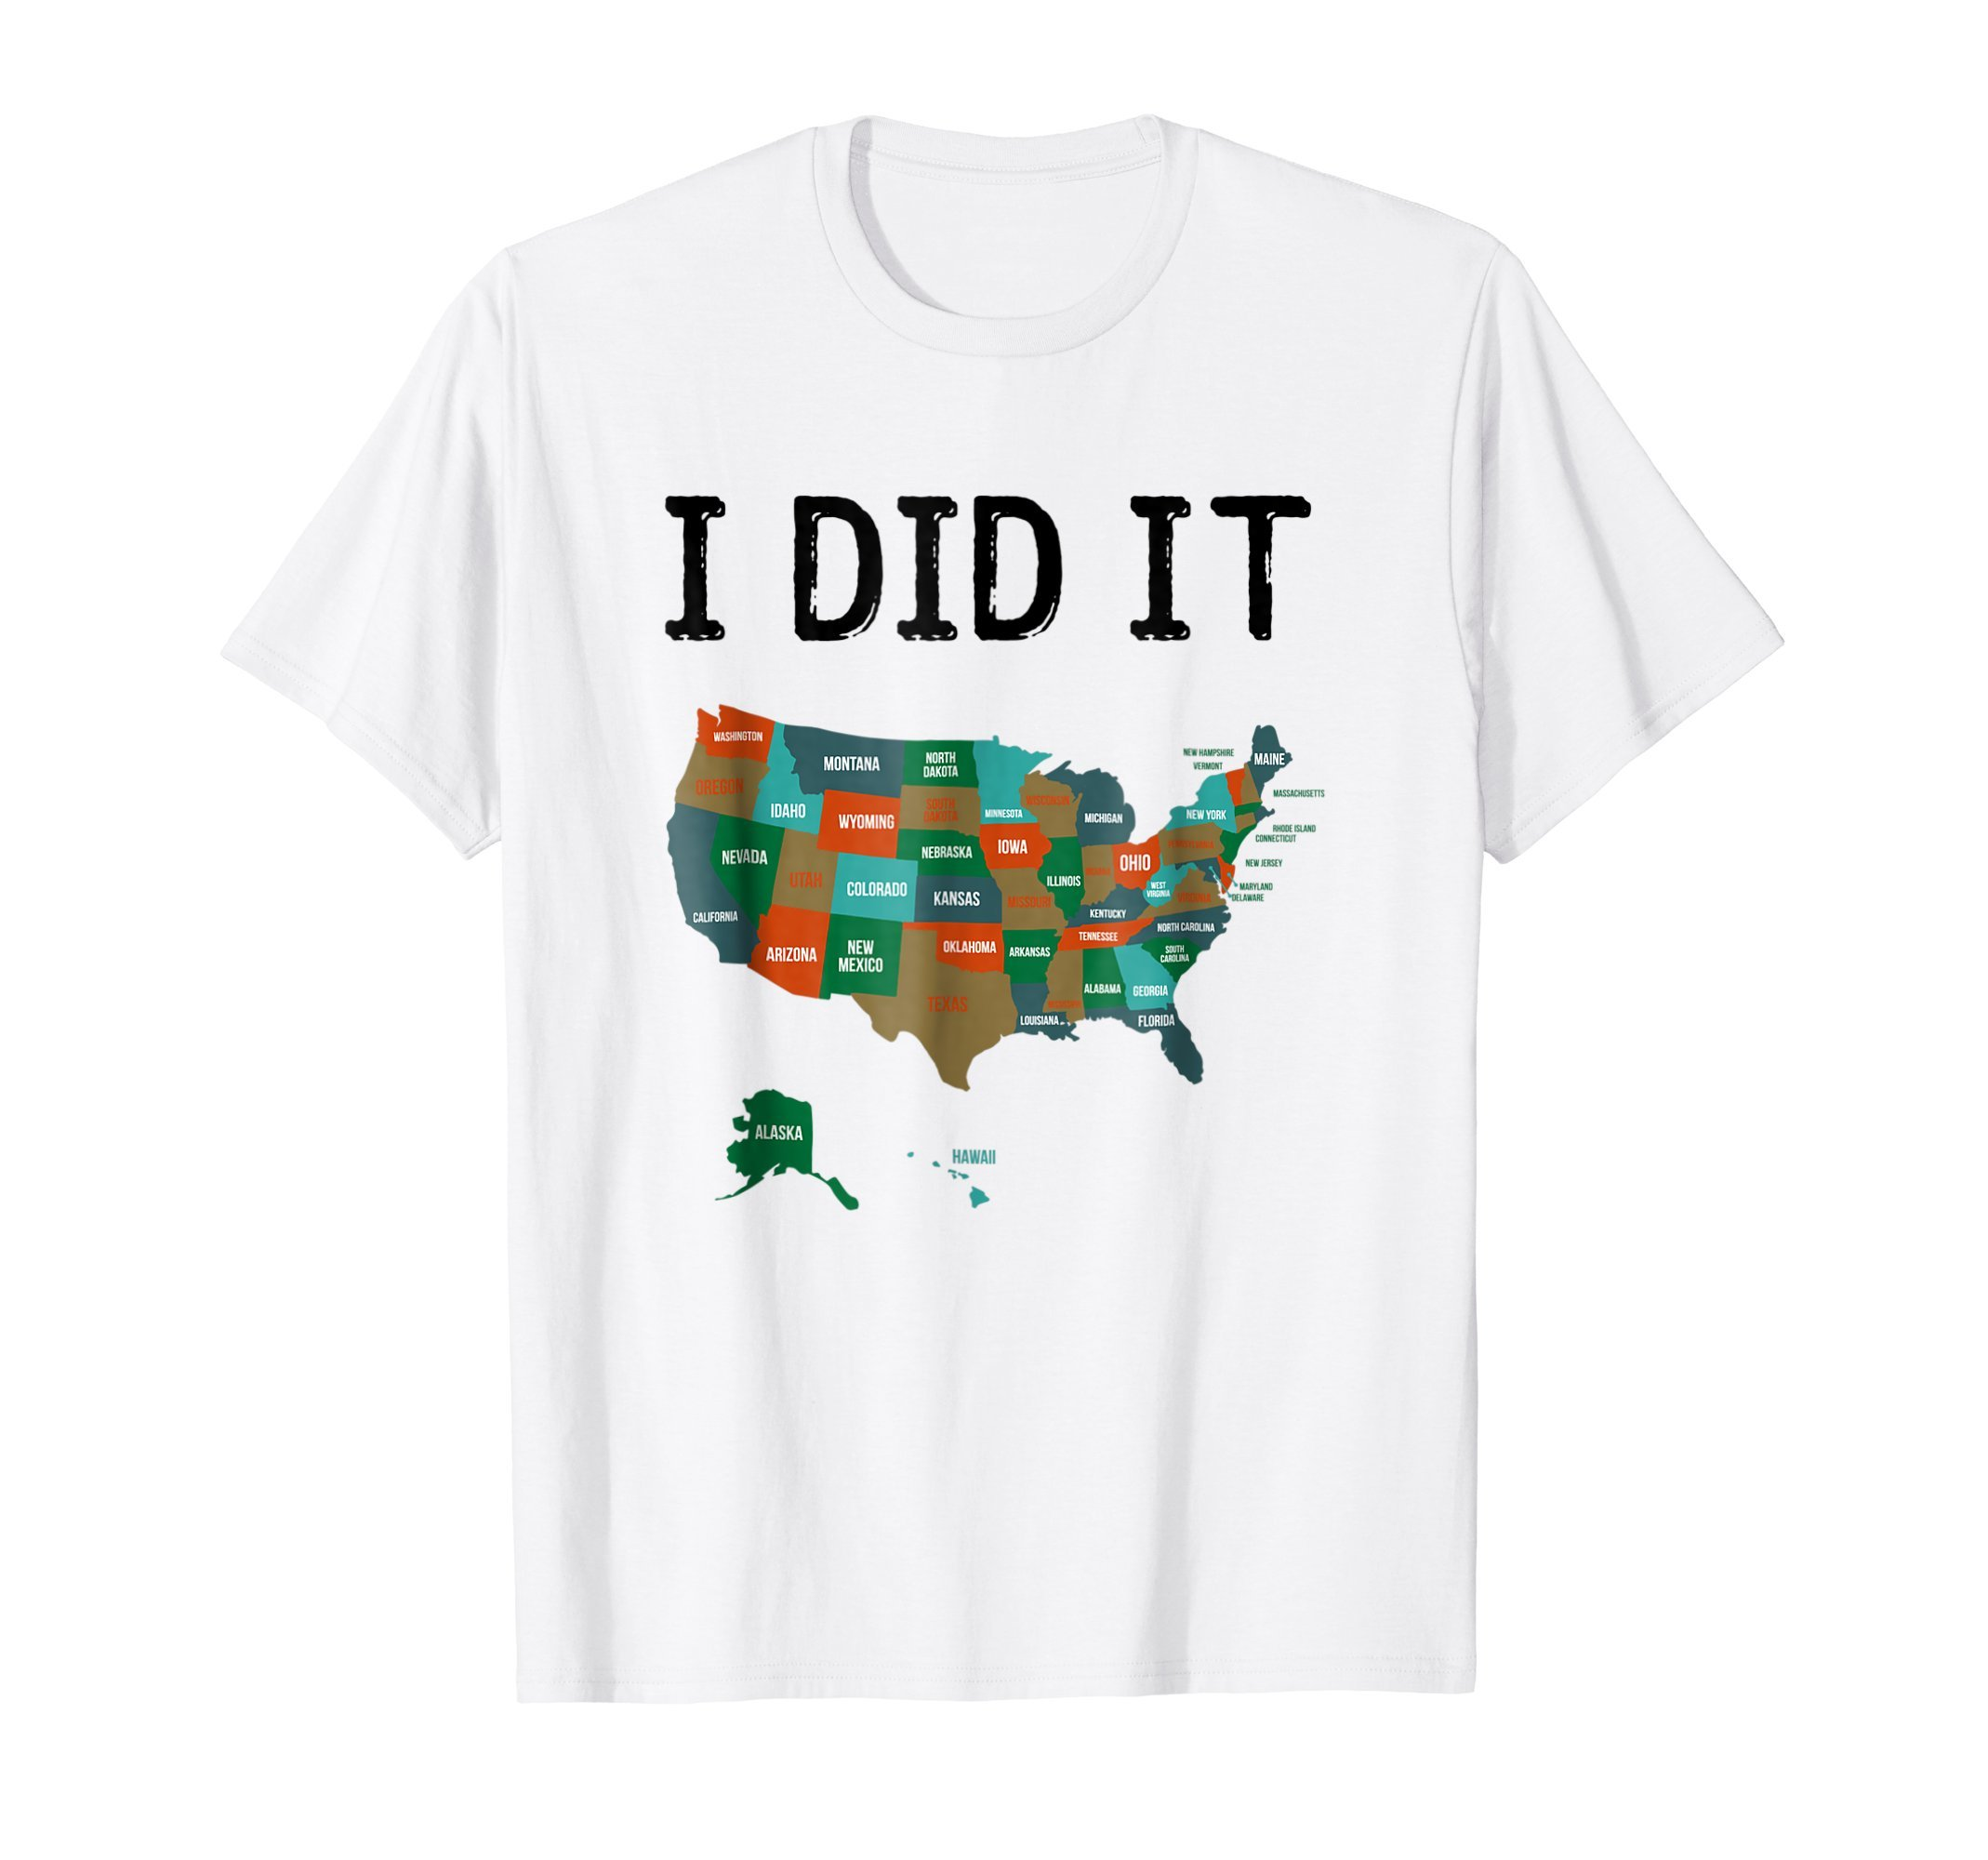 Visited all 50 states shirt, USA map t-shirt gift for travel